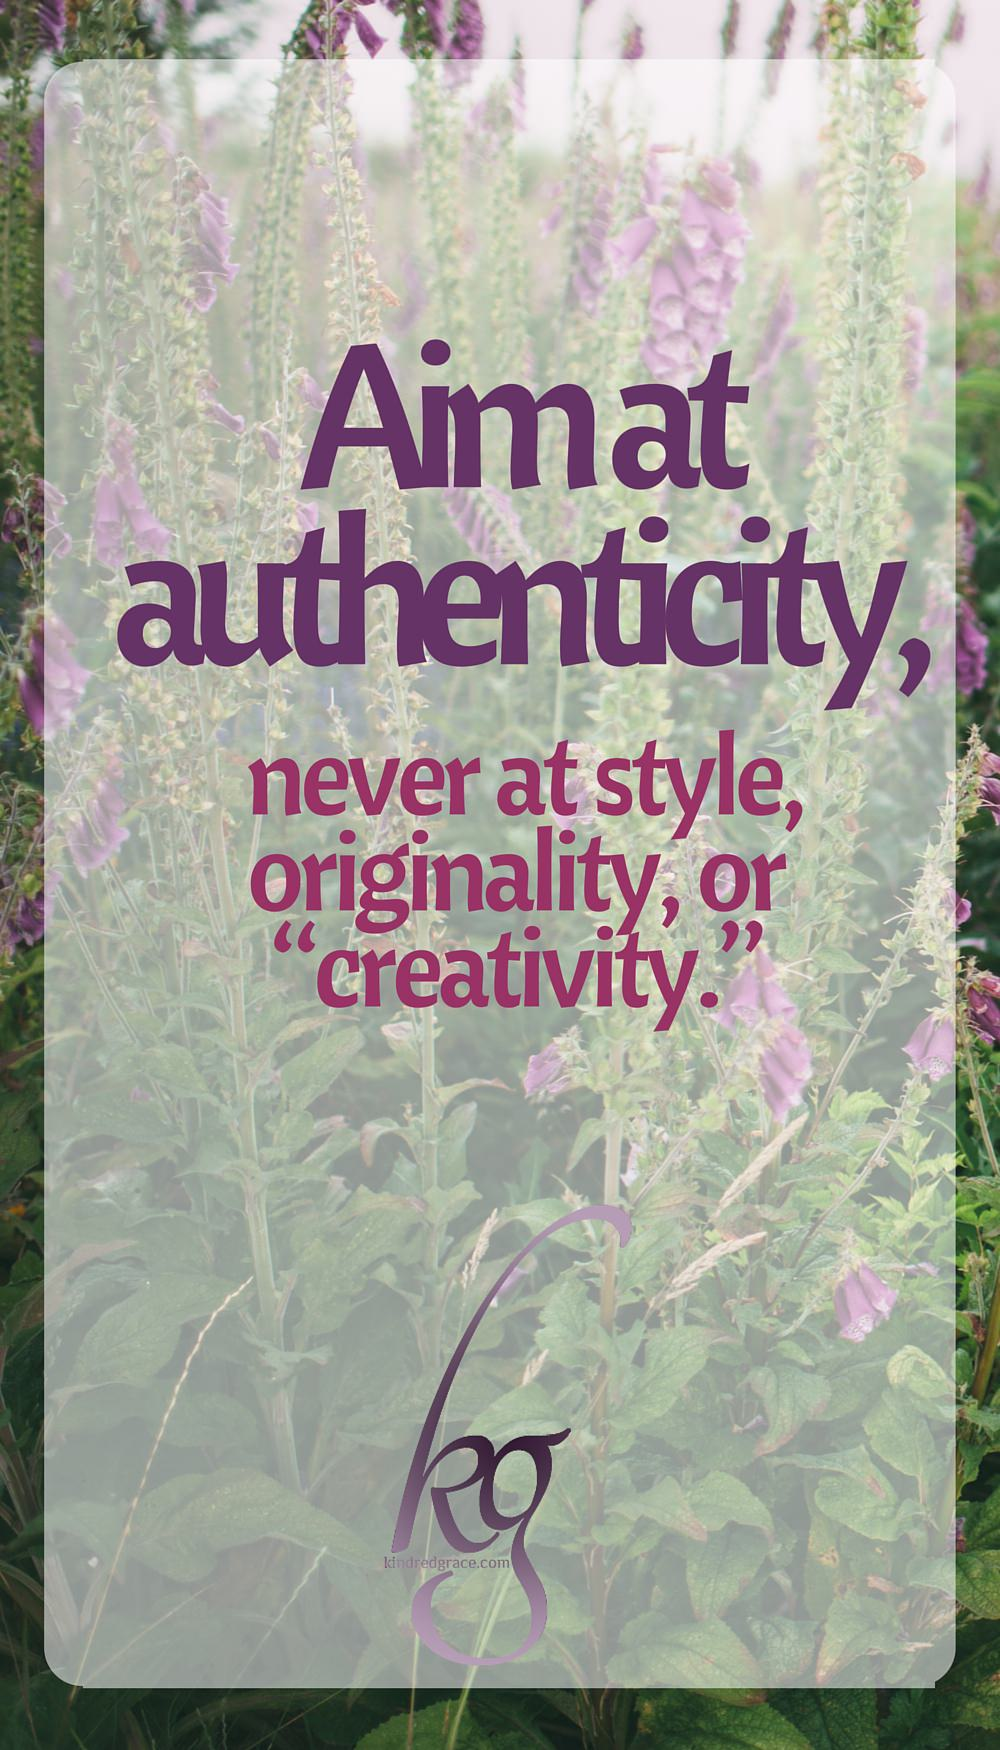 "Aim at authenticity, never at style, originality, or ""creativity.""